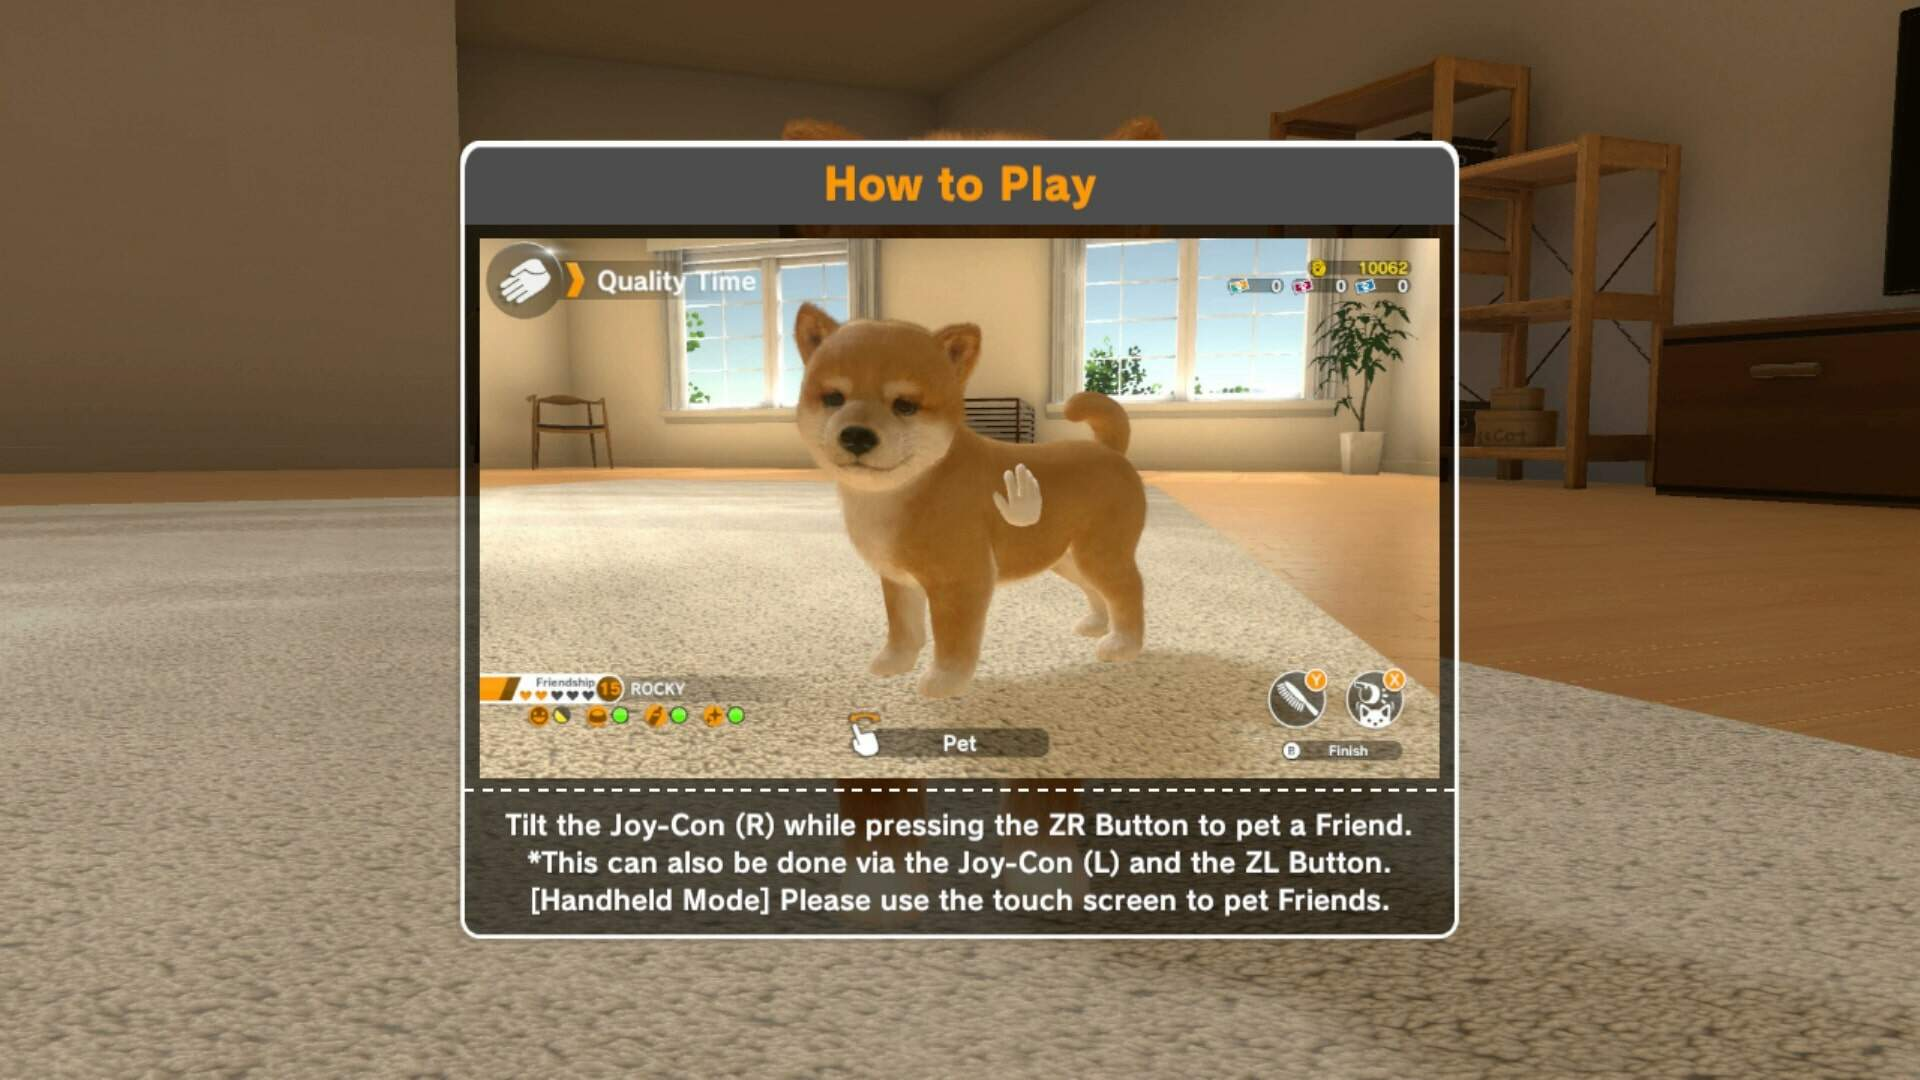 Little Friends Dogs and Cats: Cats List, Breeds, How to Search For a Cat